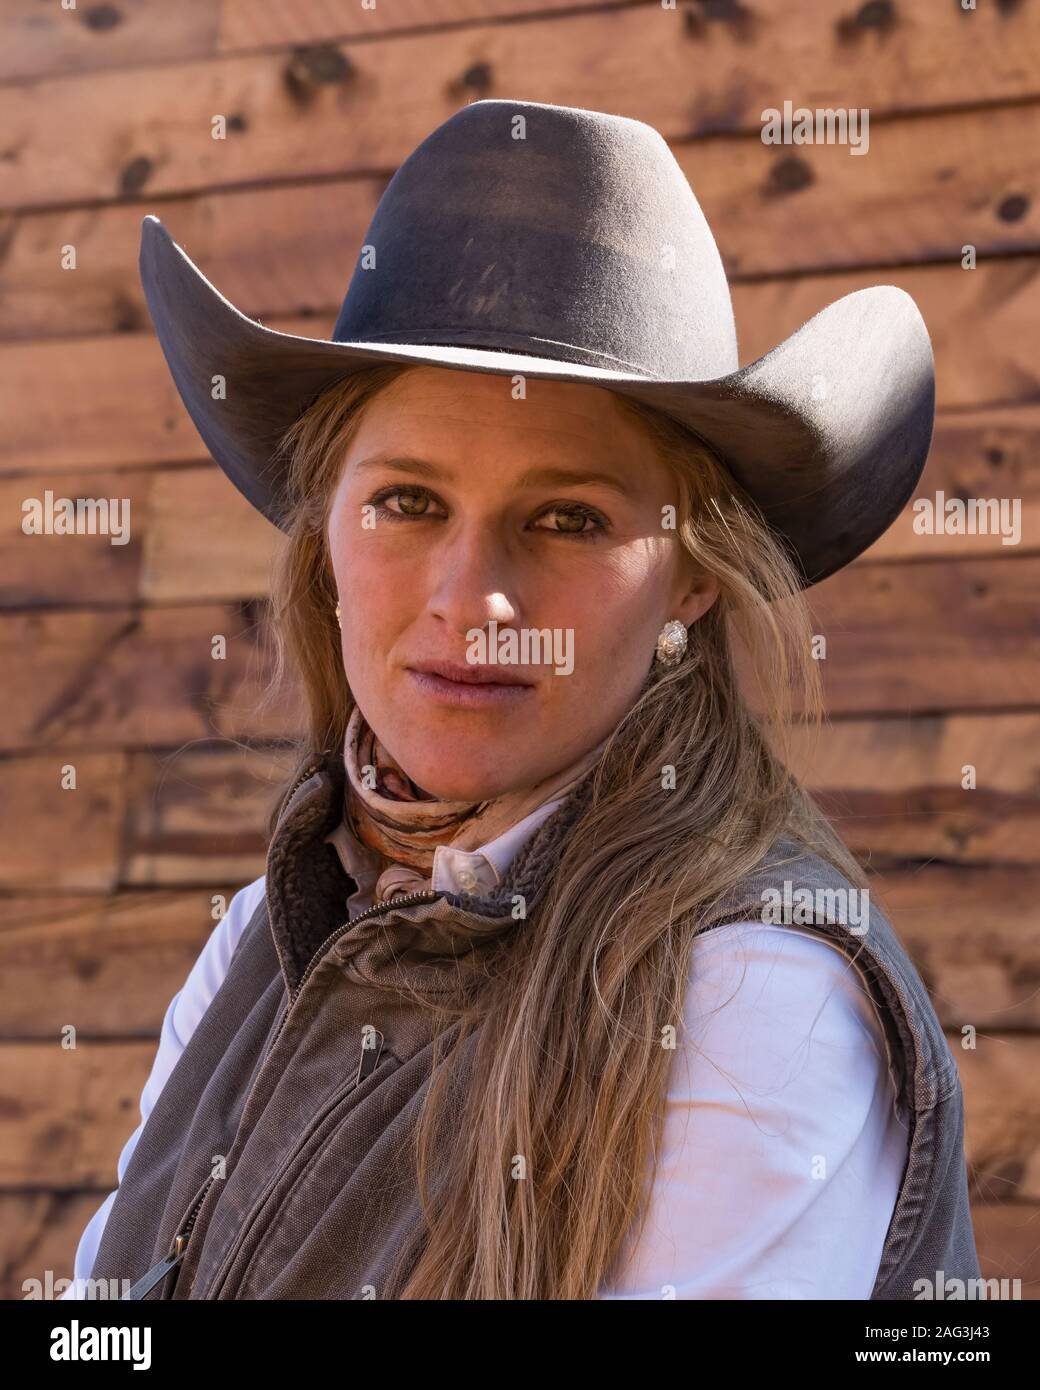 A young attractive working cowgirl wrangler poses on her horse on a ranch near Moab, Utah. Stock Photo